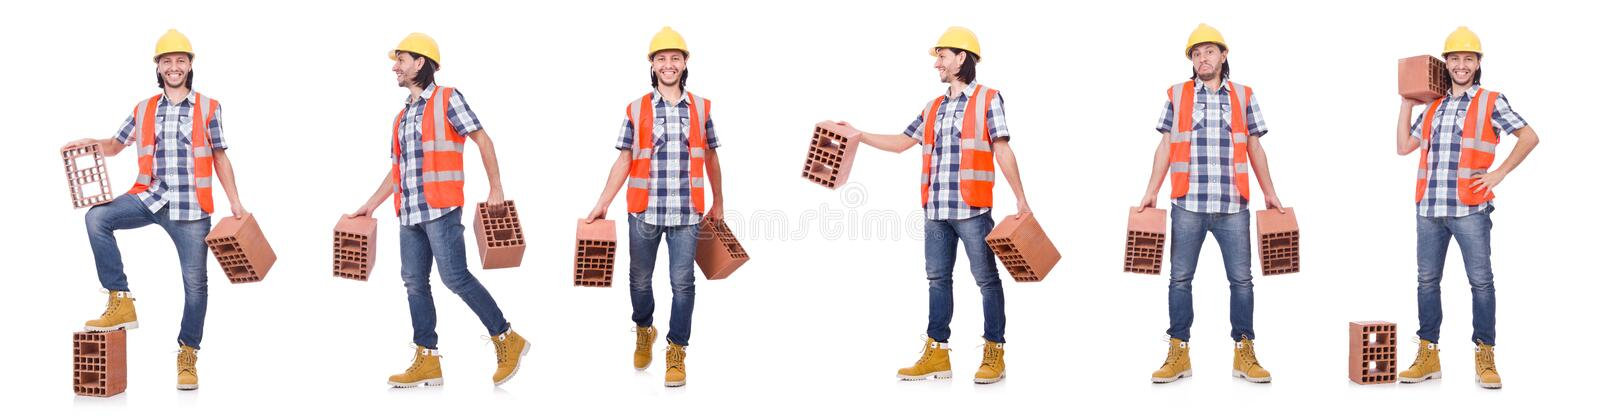 The builder with clay bricks isolated on white royalty free stock image